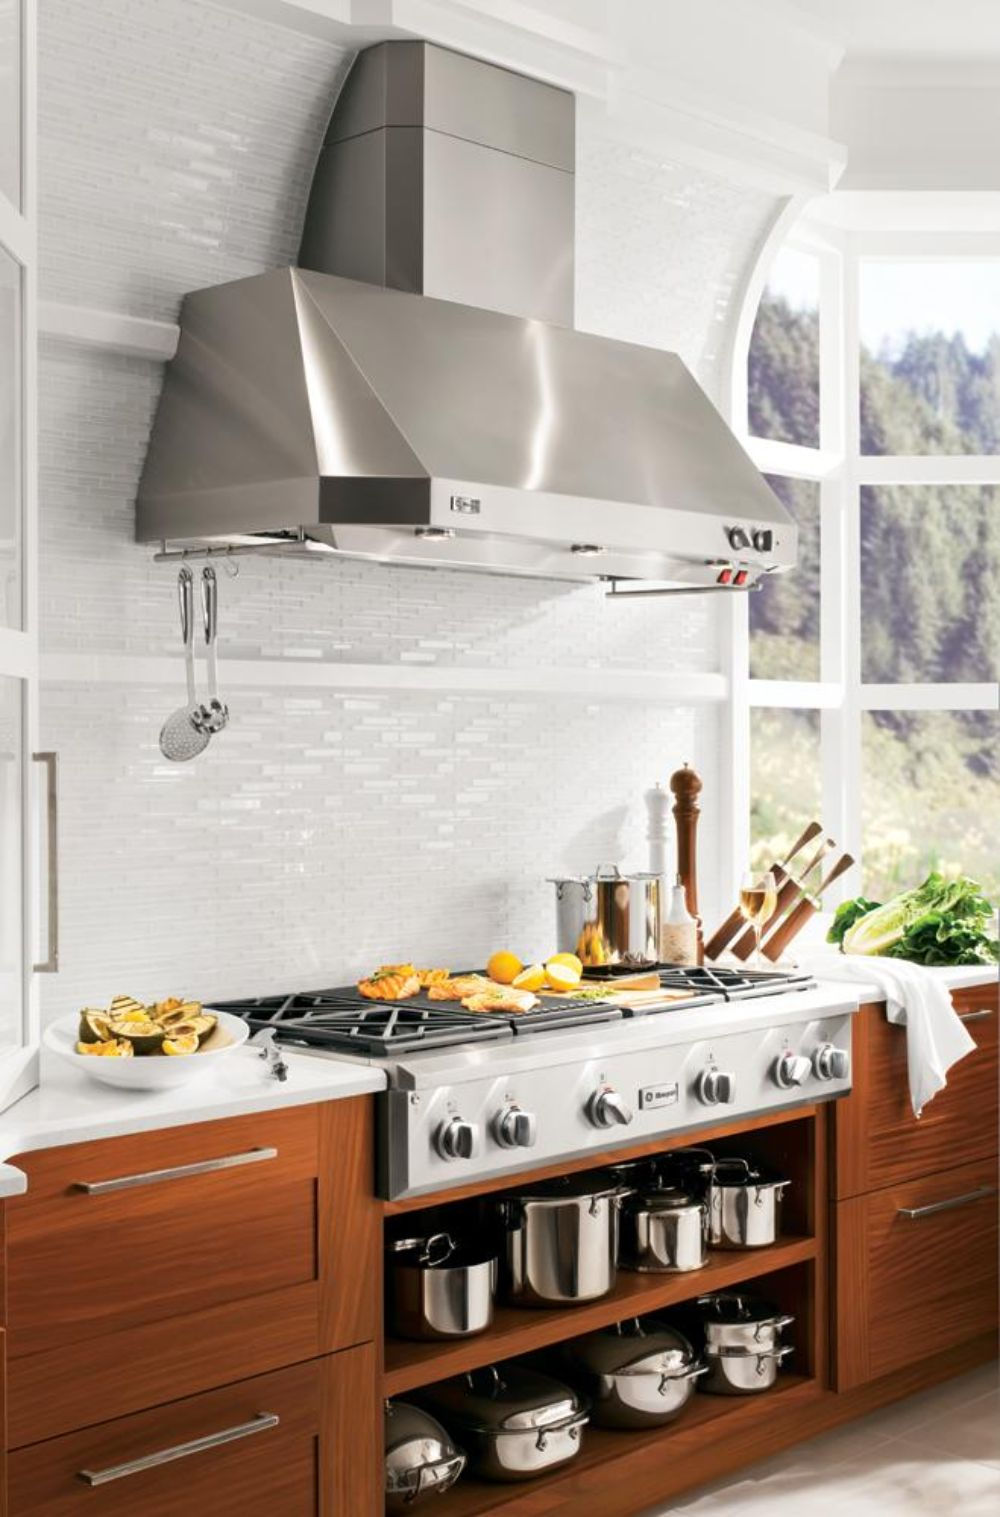 Bright and simple GE kitchen with elegant white mosaic tile